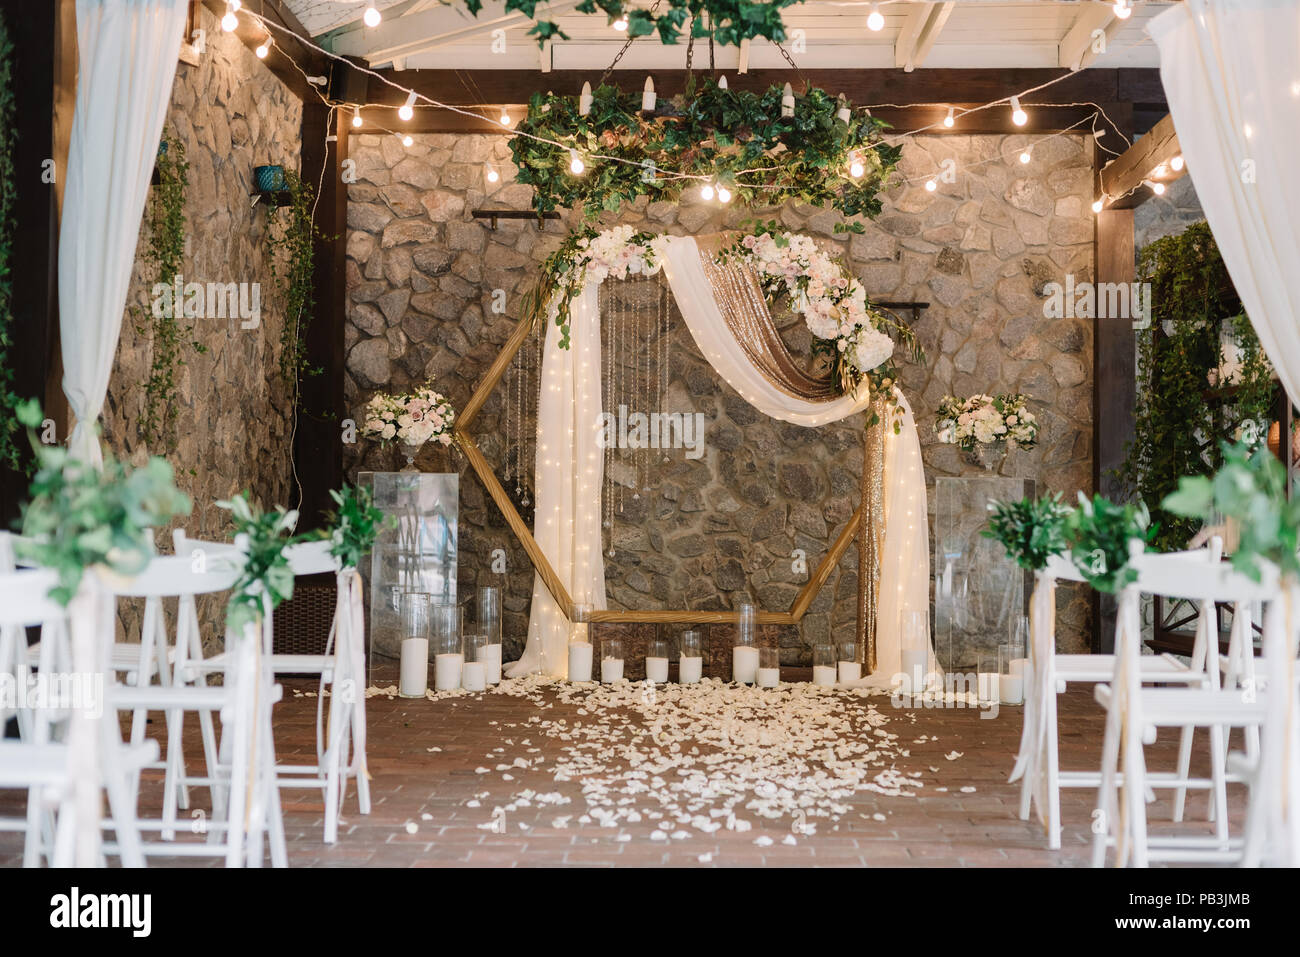 Magnificent Decoration Of A Wedding Ceremony With Original Details